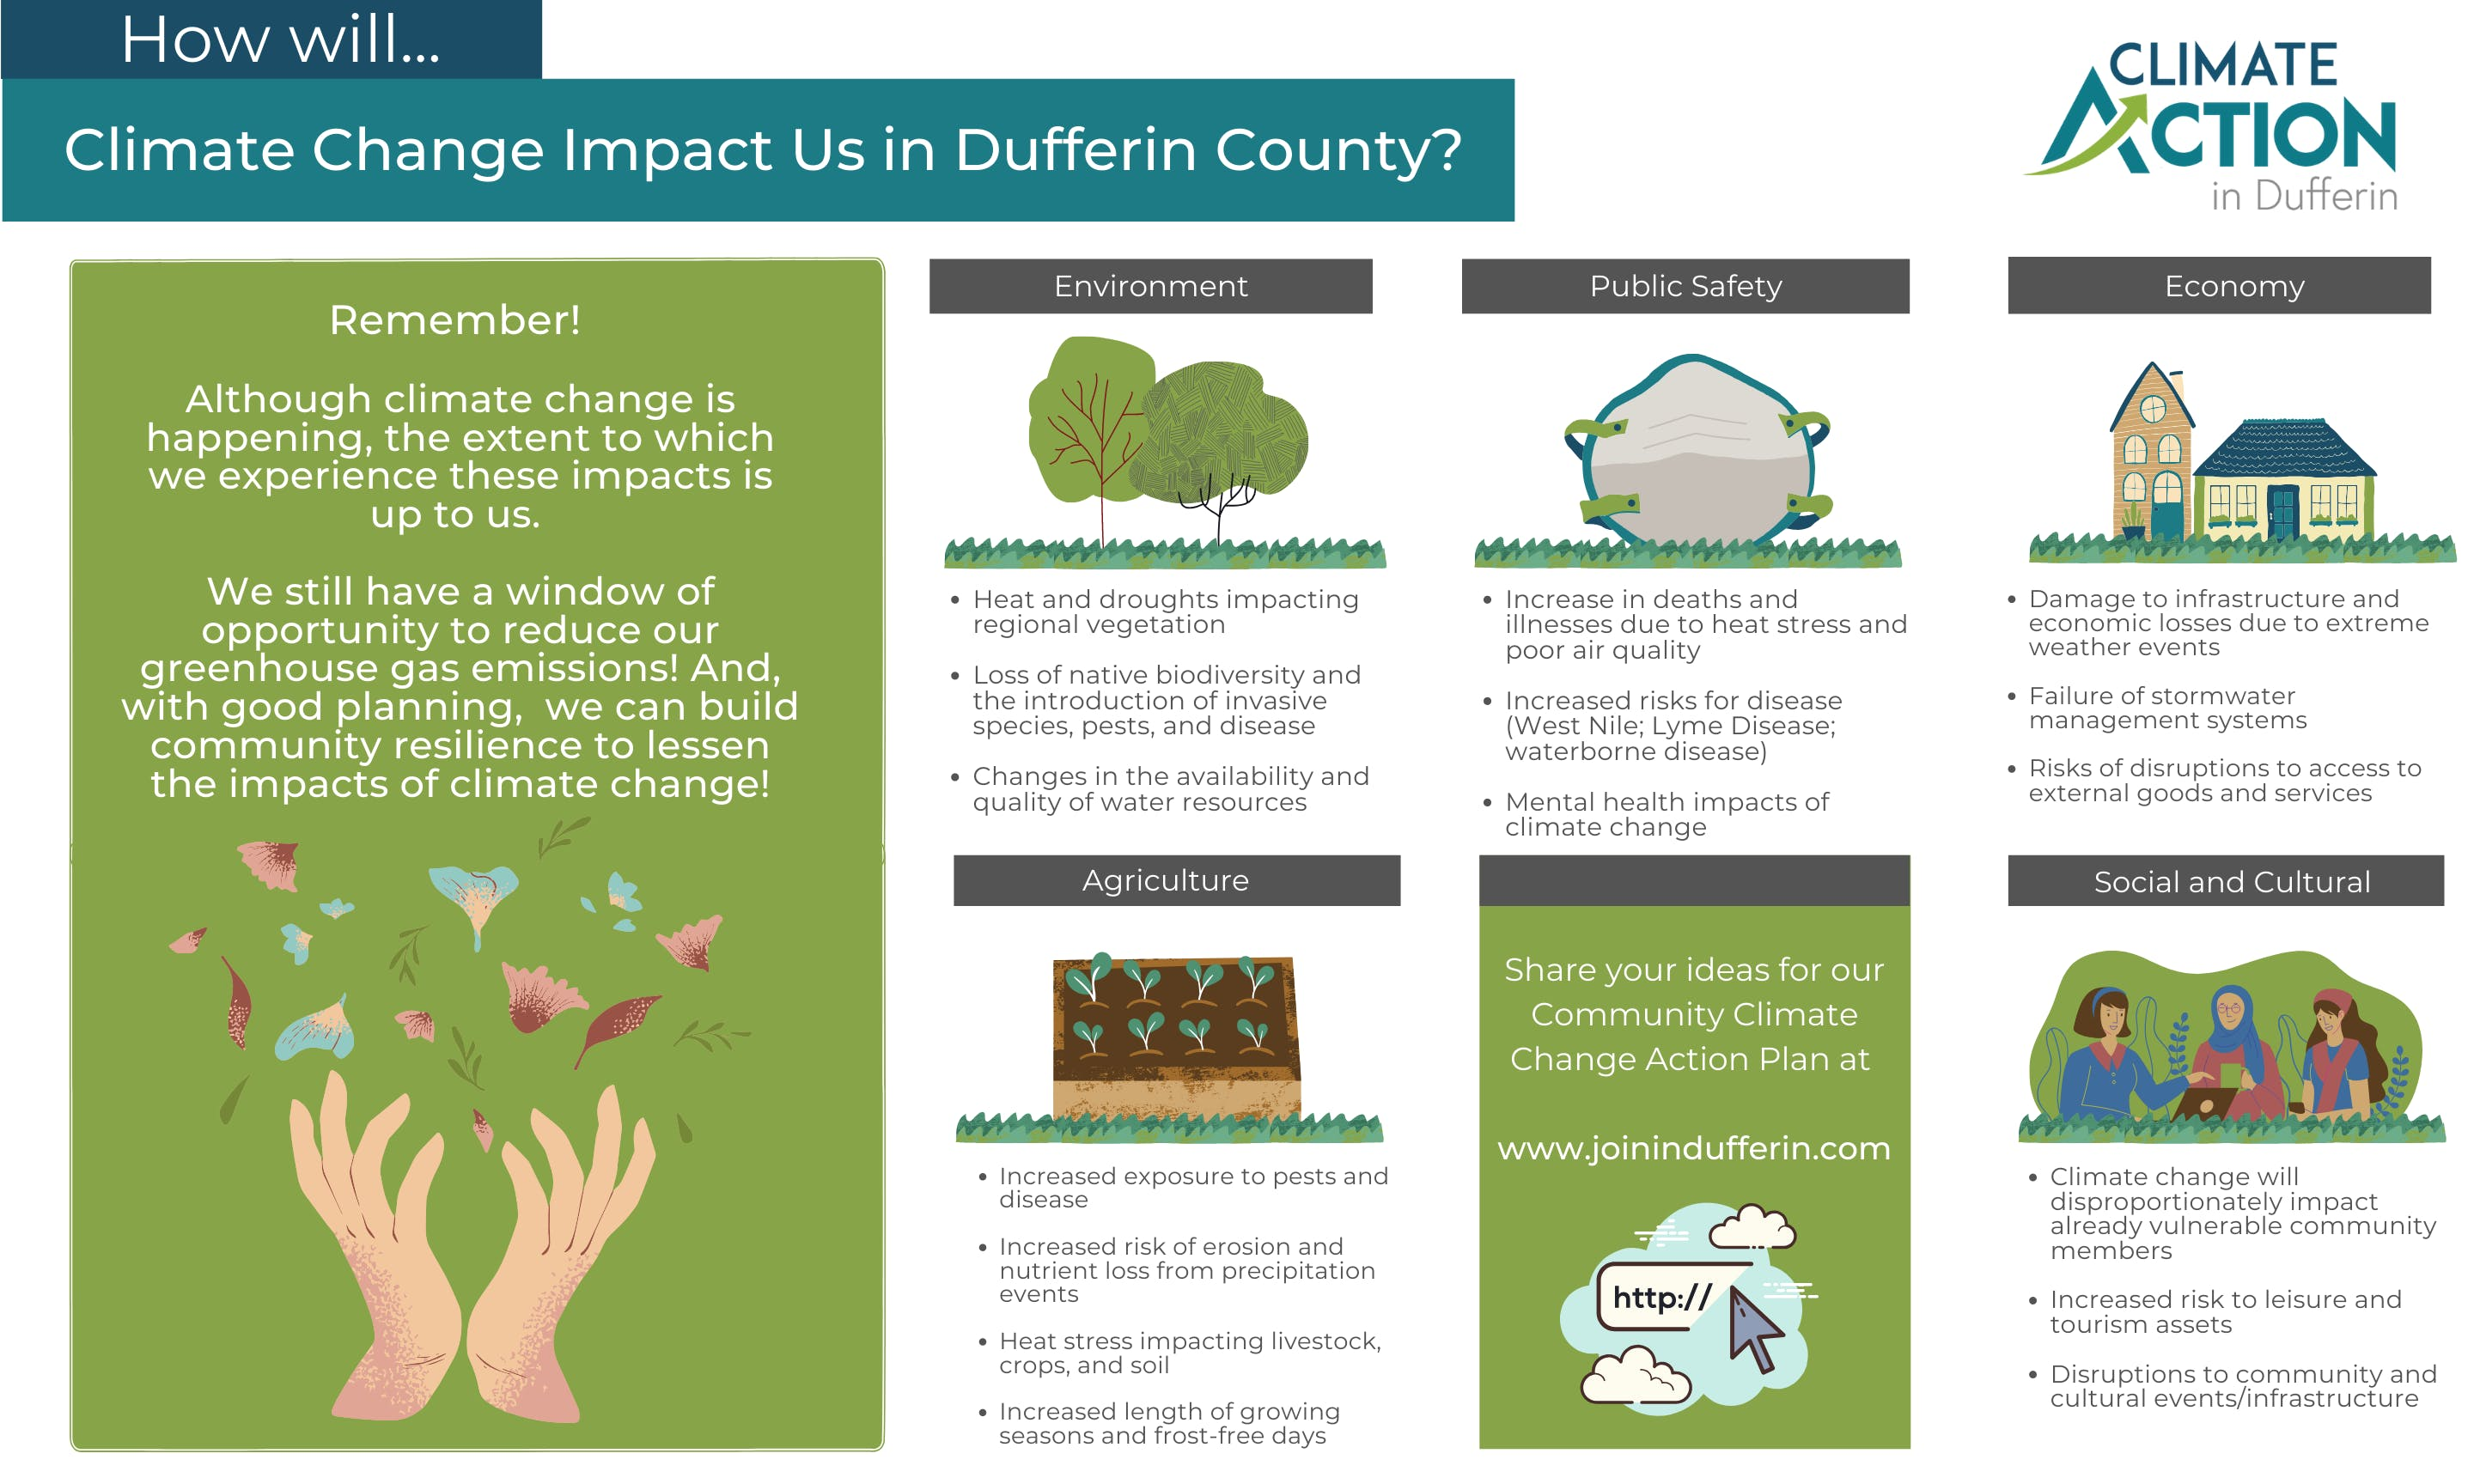 How will climate change impact us in Dufferin County?